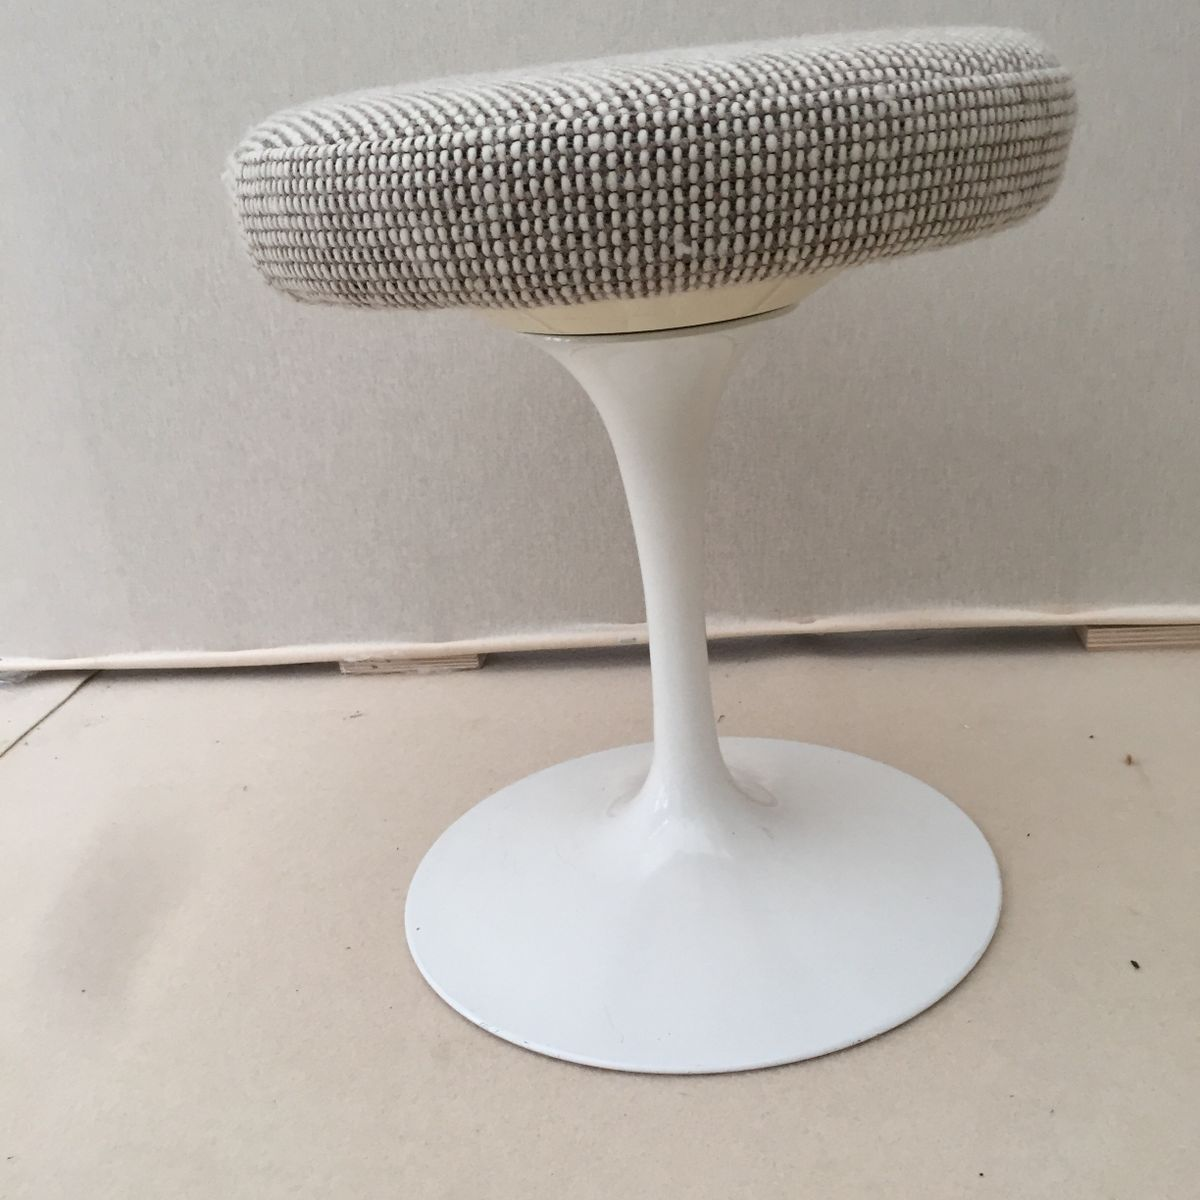 Mid Century Tulip Stool By Eero Saarinen For Knoll For Sale At Pamono